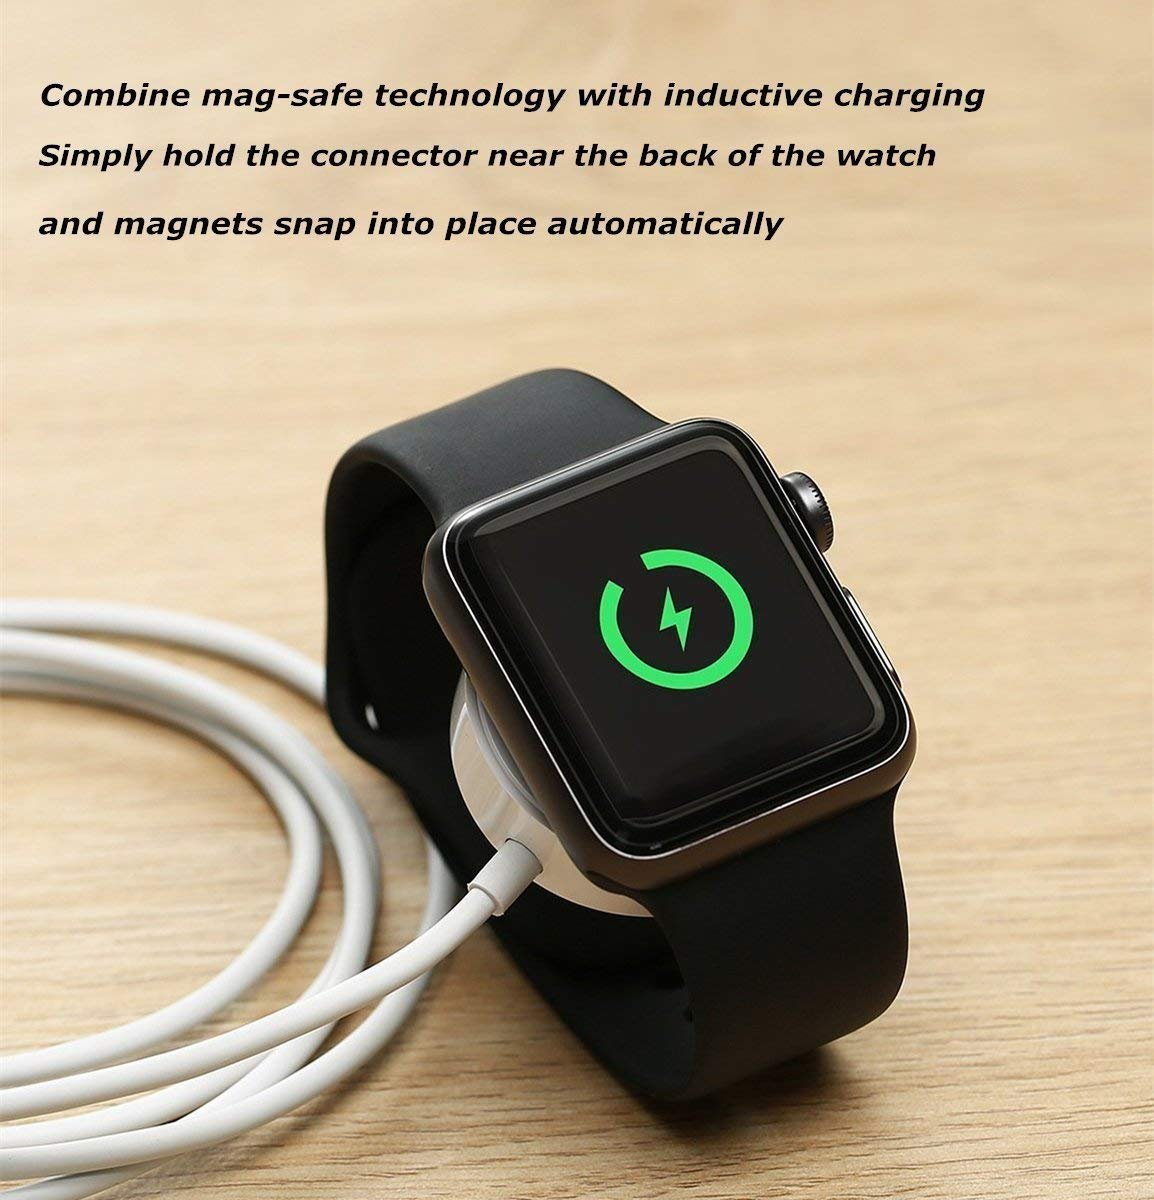 Apple Watch Charger, ATETION 1m Portable Wireless Charger for iWatch with MFI Certified Magnetic Charger for Apple Watch Series 1/2/3/Nike+/Edition/Hermès in 38mm & 42mm by ATETION (Image #4)